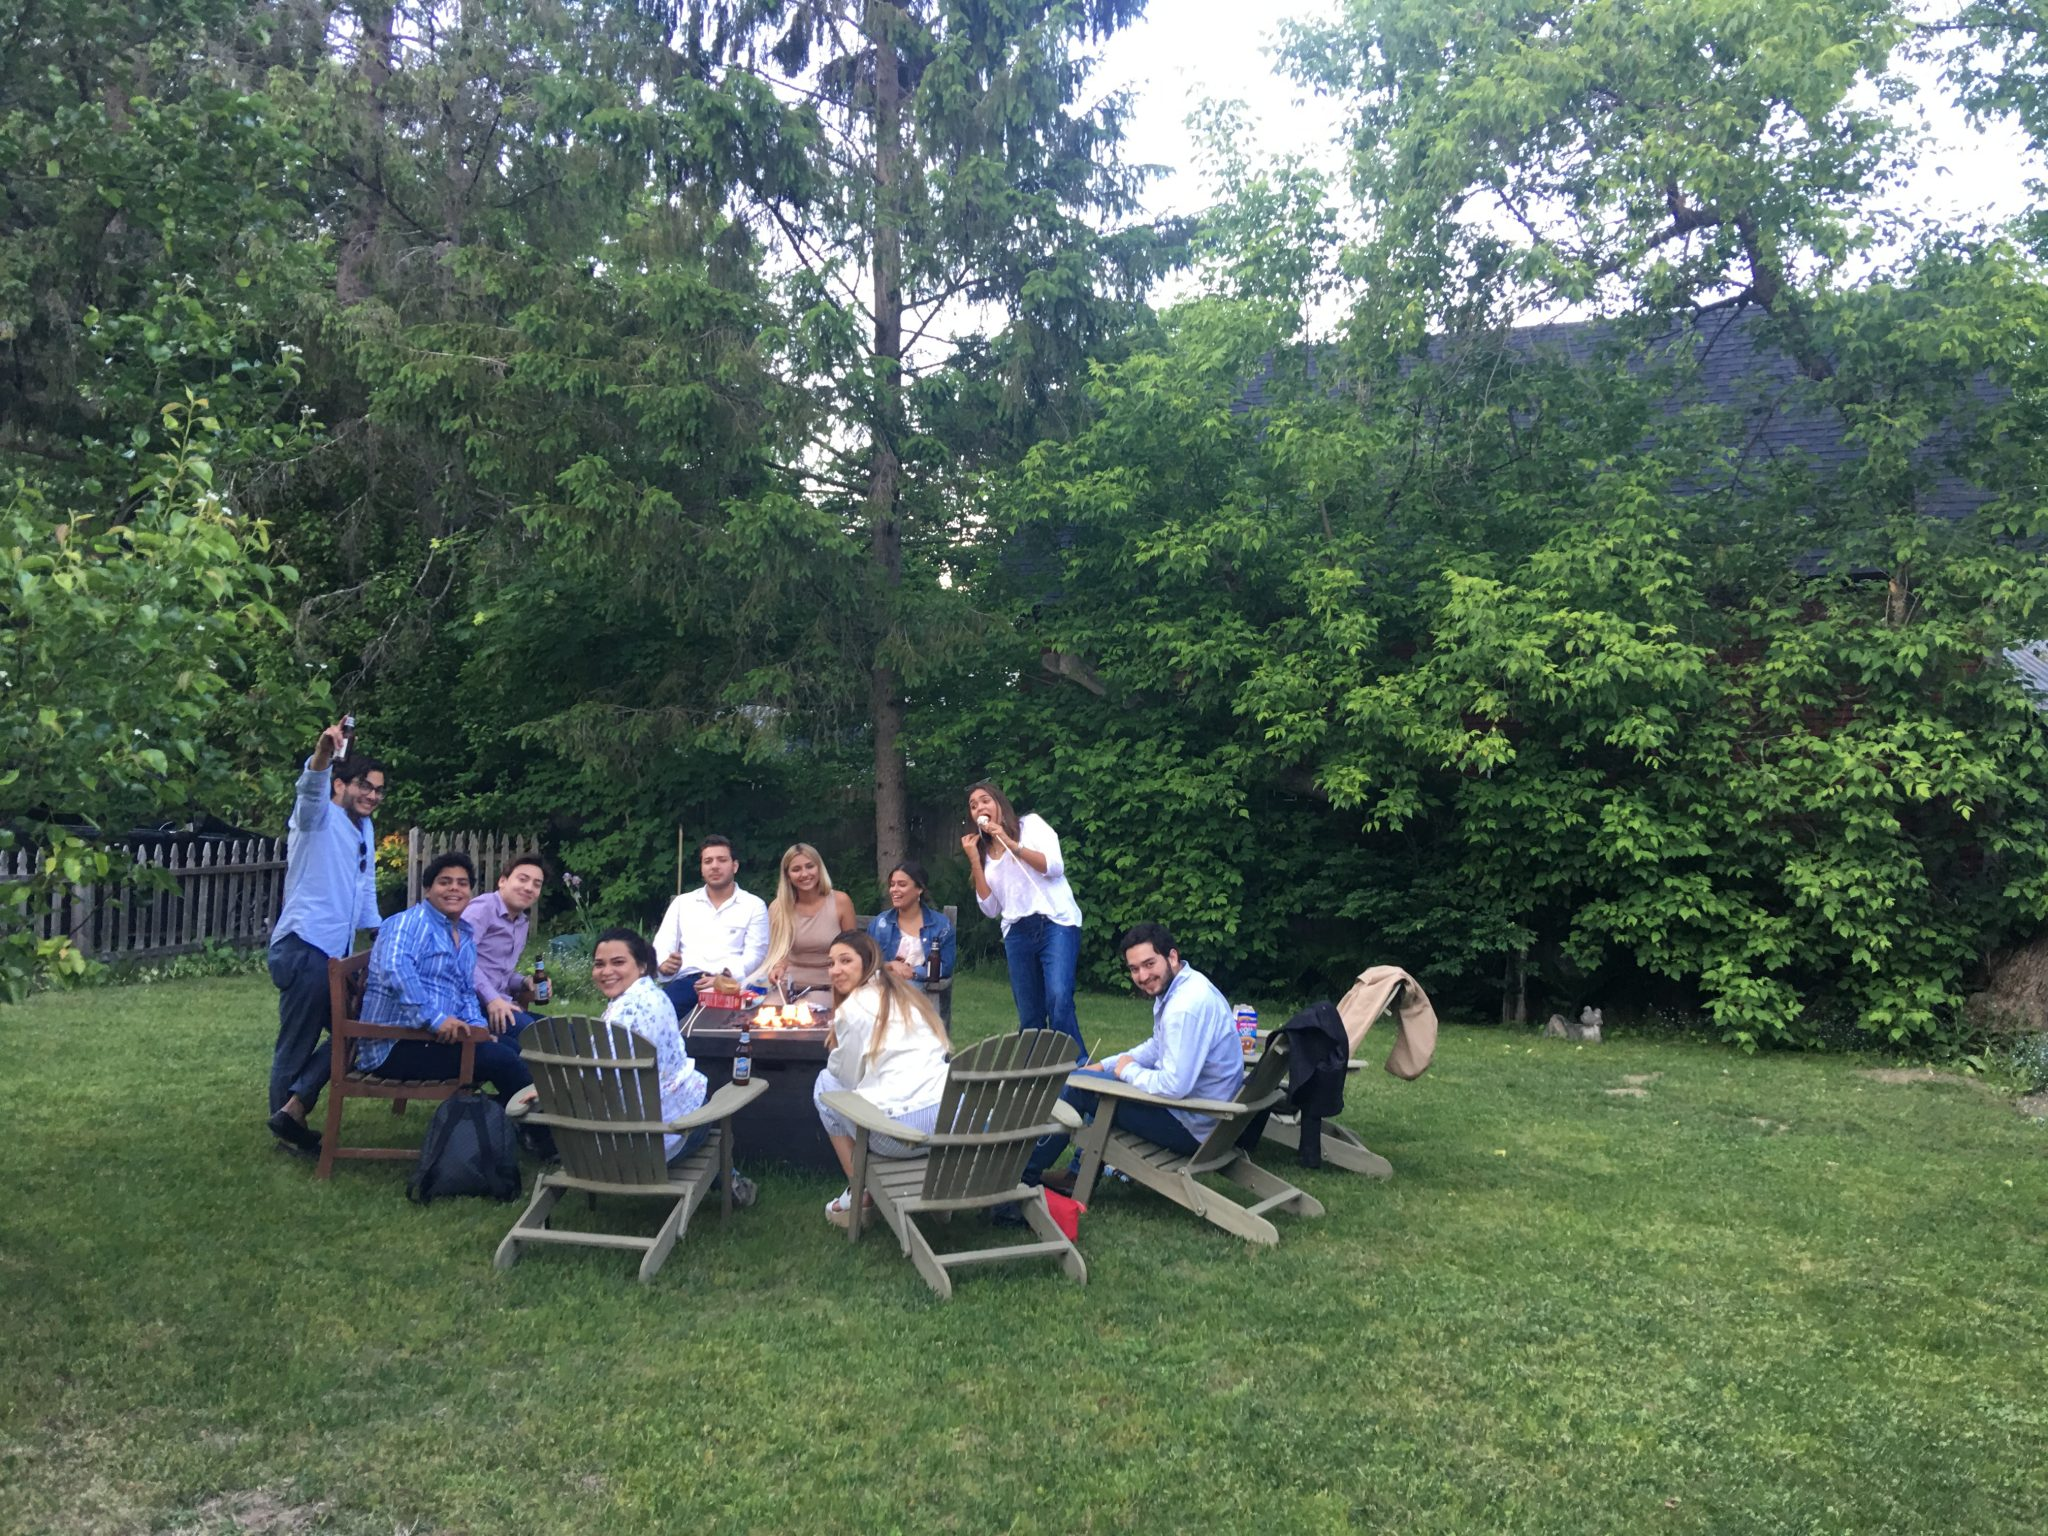 Several young couples sitting on Adirondack chairs, gathered around a firepit, smiling, some with beer in hand